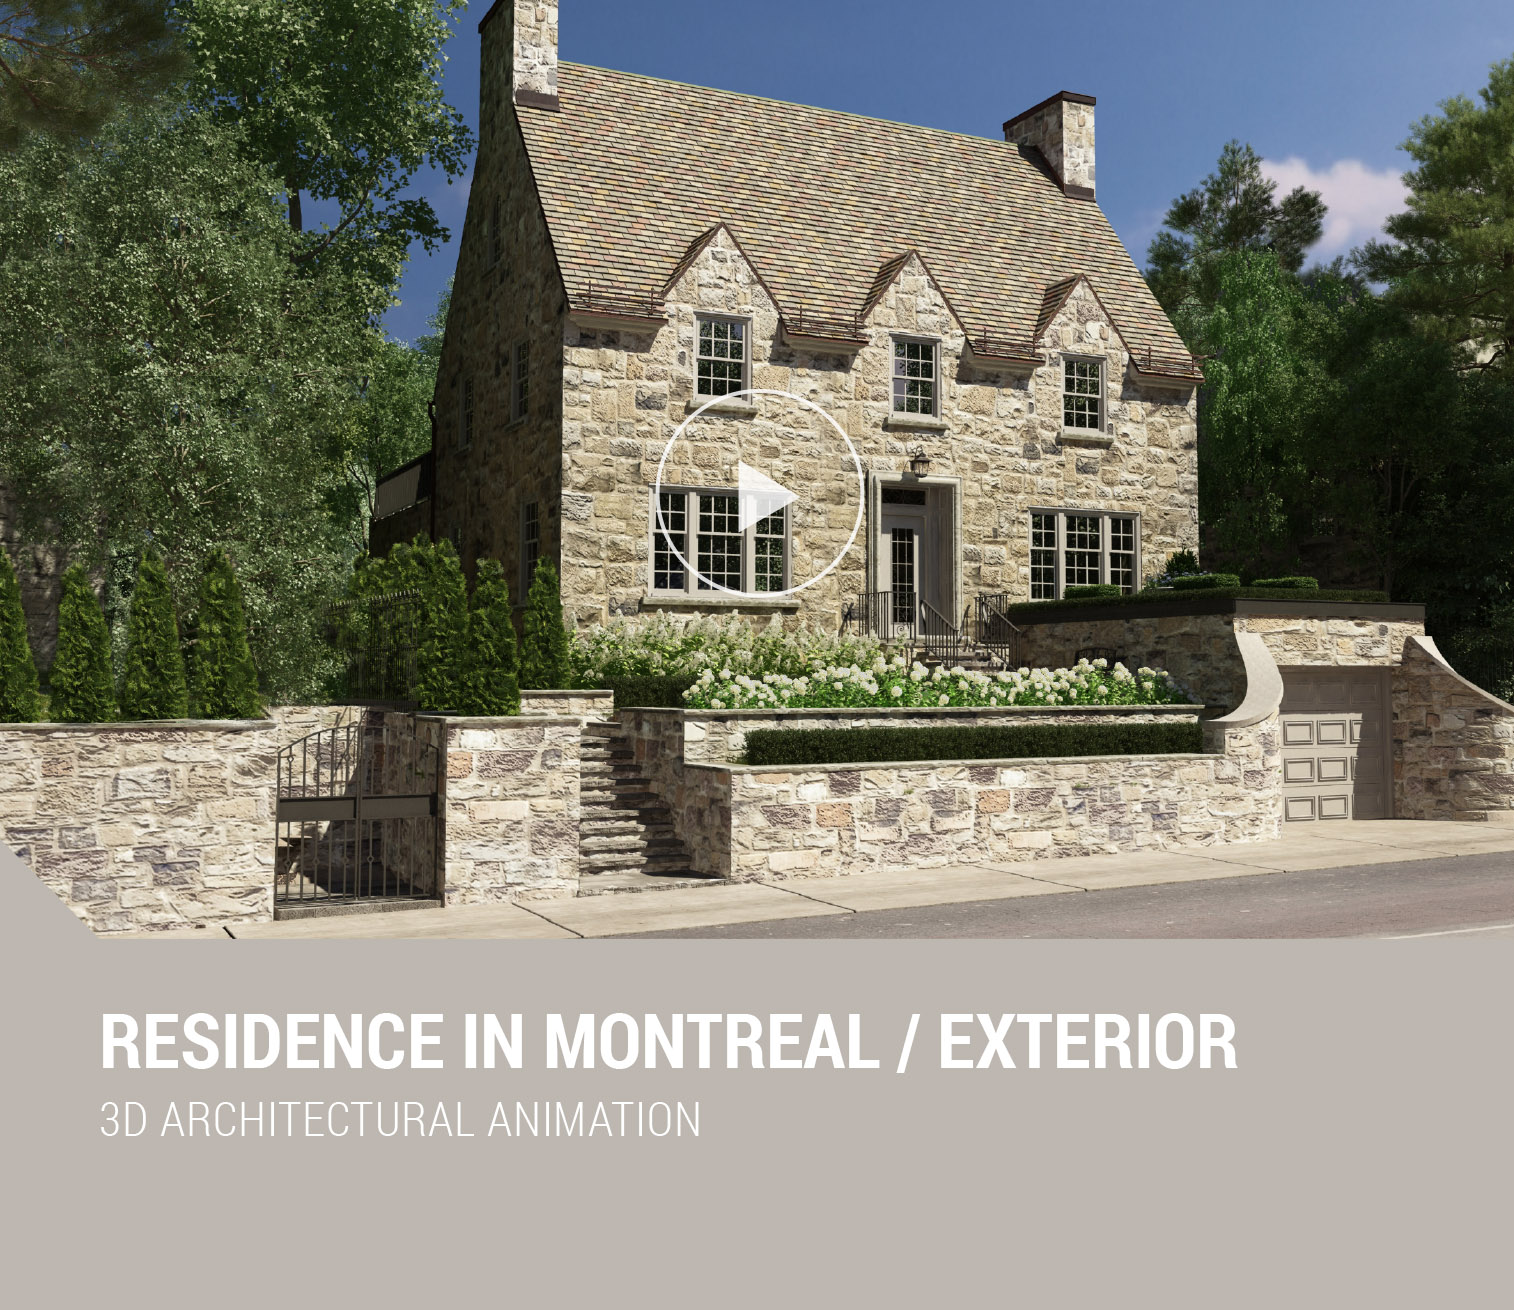 Schema Dimitra Chrona designer, creative director, architectural, 3D visualization, 3D Rendering, branding websites, digital, graphic design, interior design, real estate, luxury property, staging, museum, virtual, art, brochures, exhibitions, logotype, logo, Canada Quebec Montreal Athens Greece schema design residence montreal exterior video small.jpg